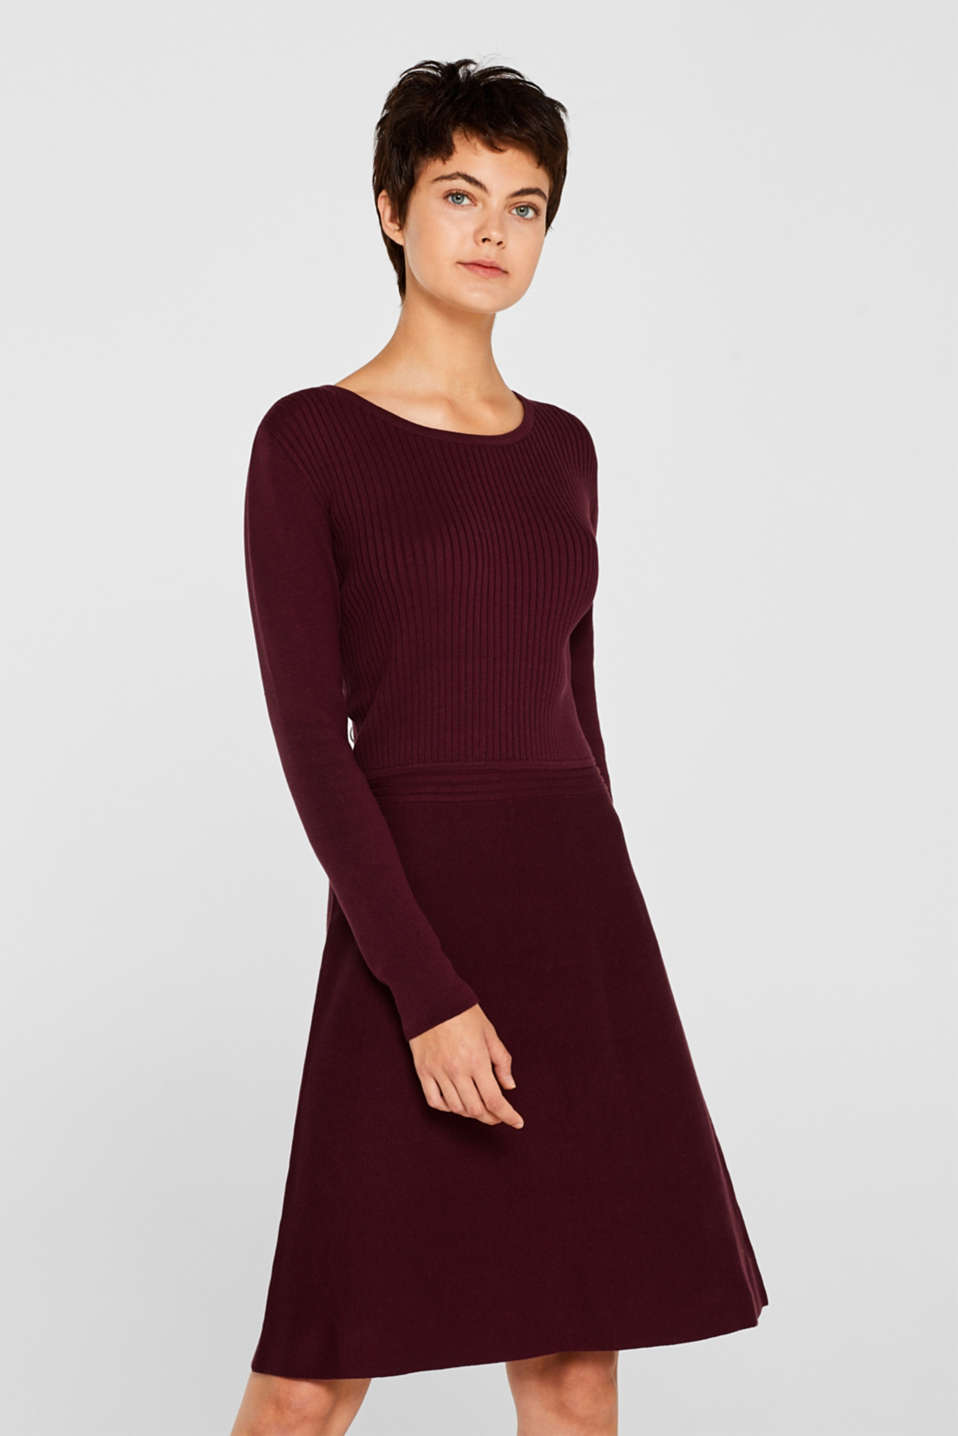 Knit dress with a ribbed texture, BORDEAUX RED, detail image number 0